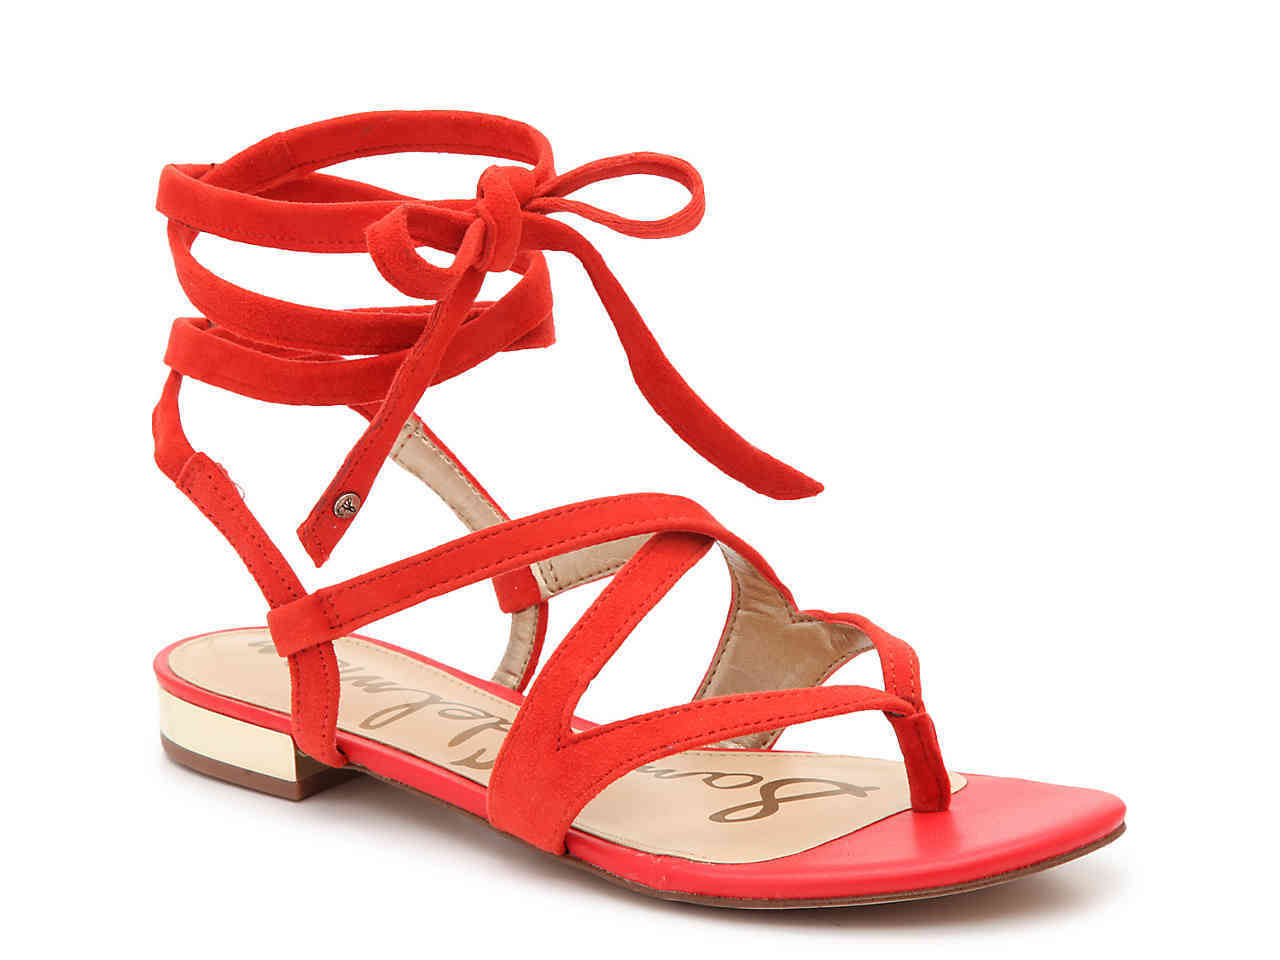 DSW red lace up sandals